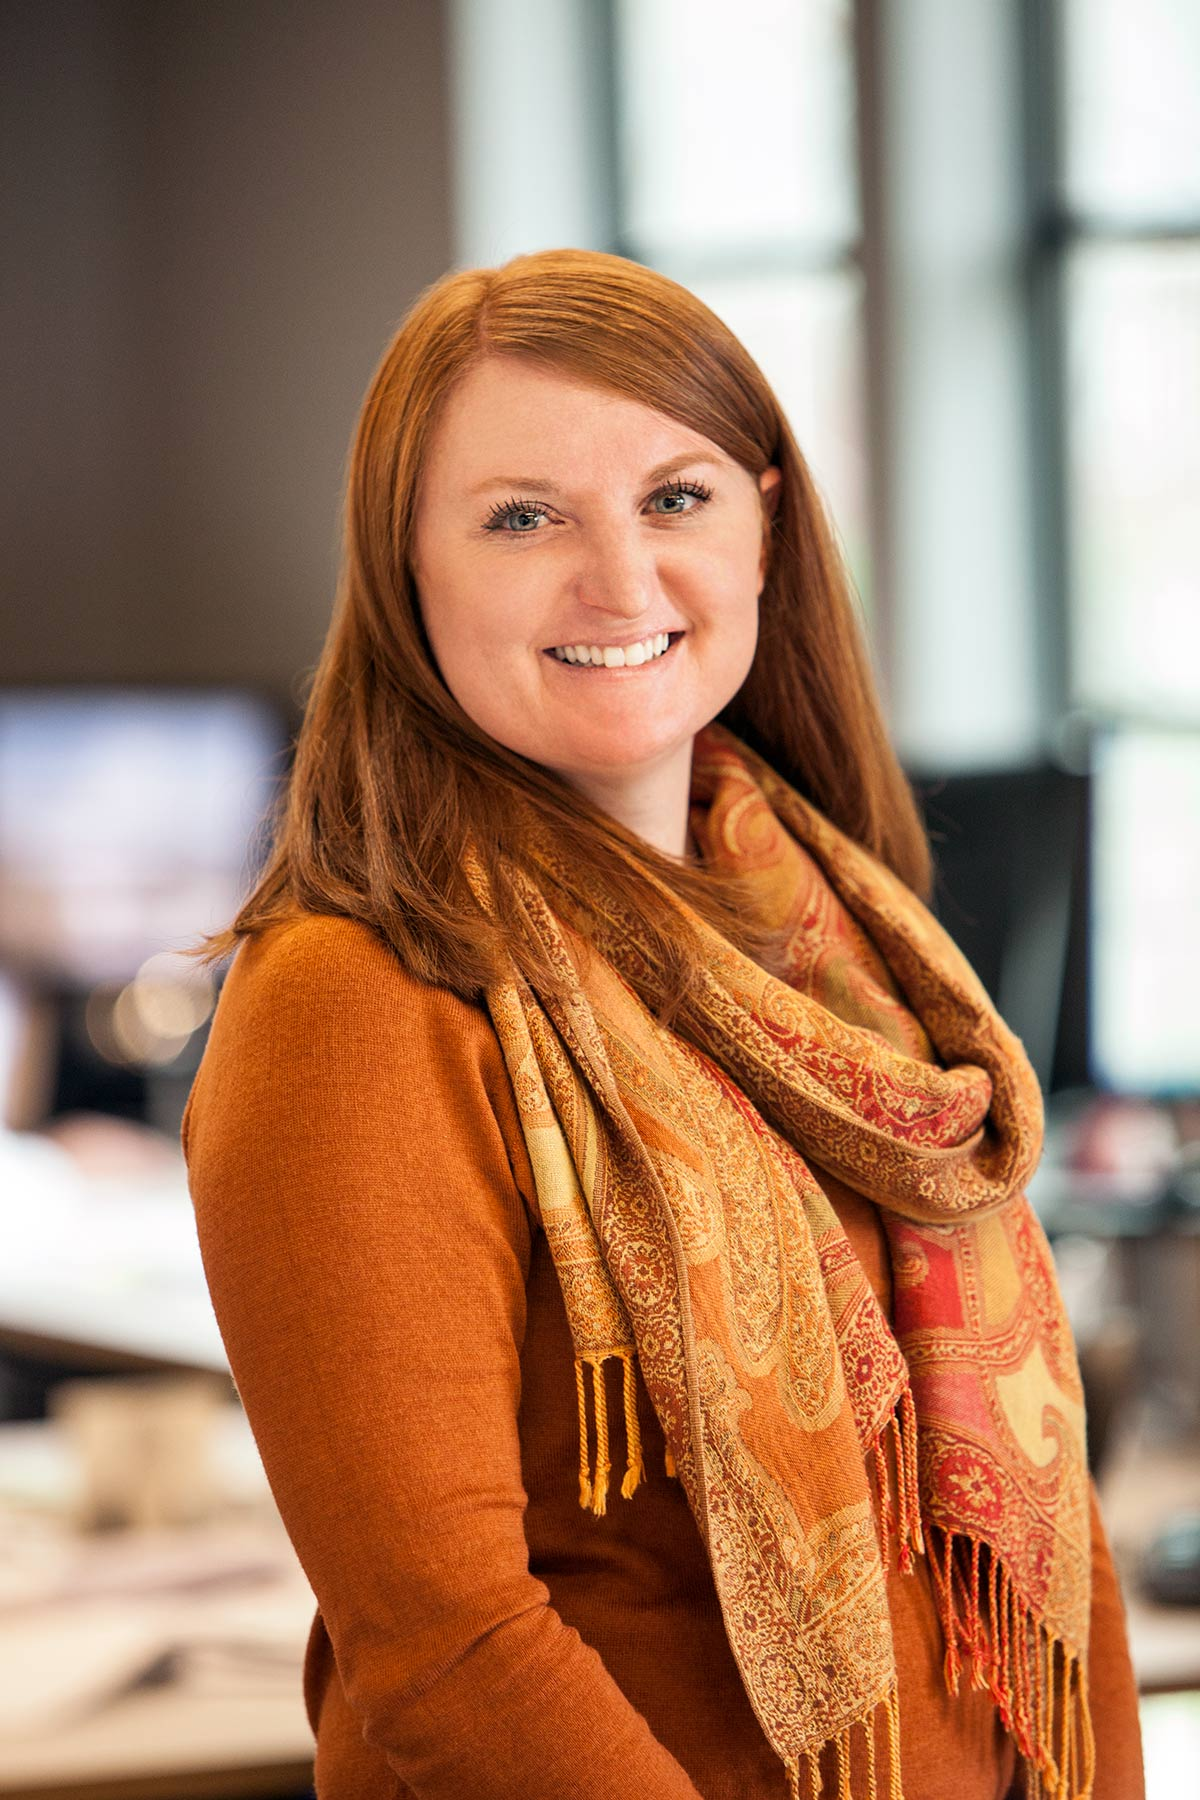 Rachel McKenzie Utah Healthcare Architect